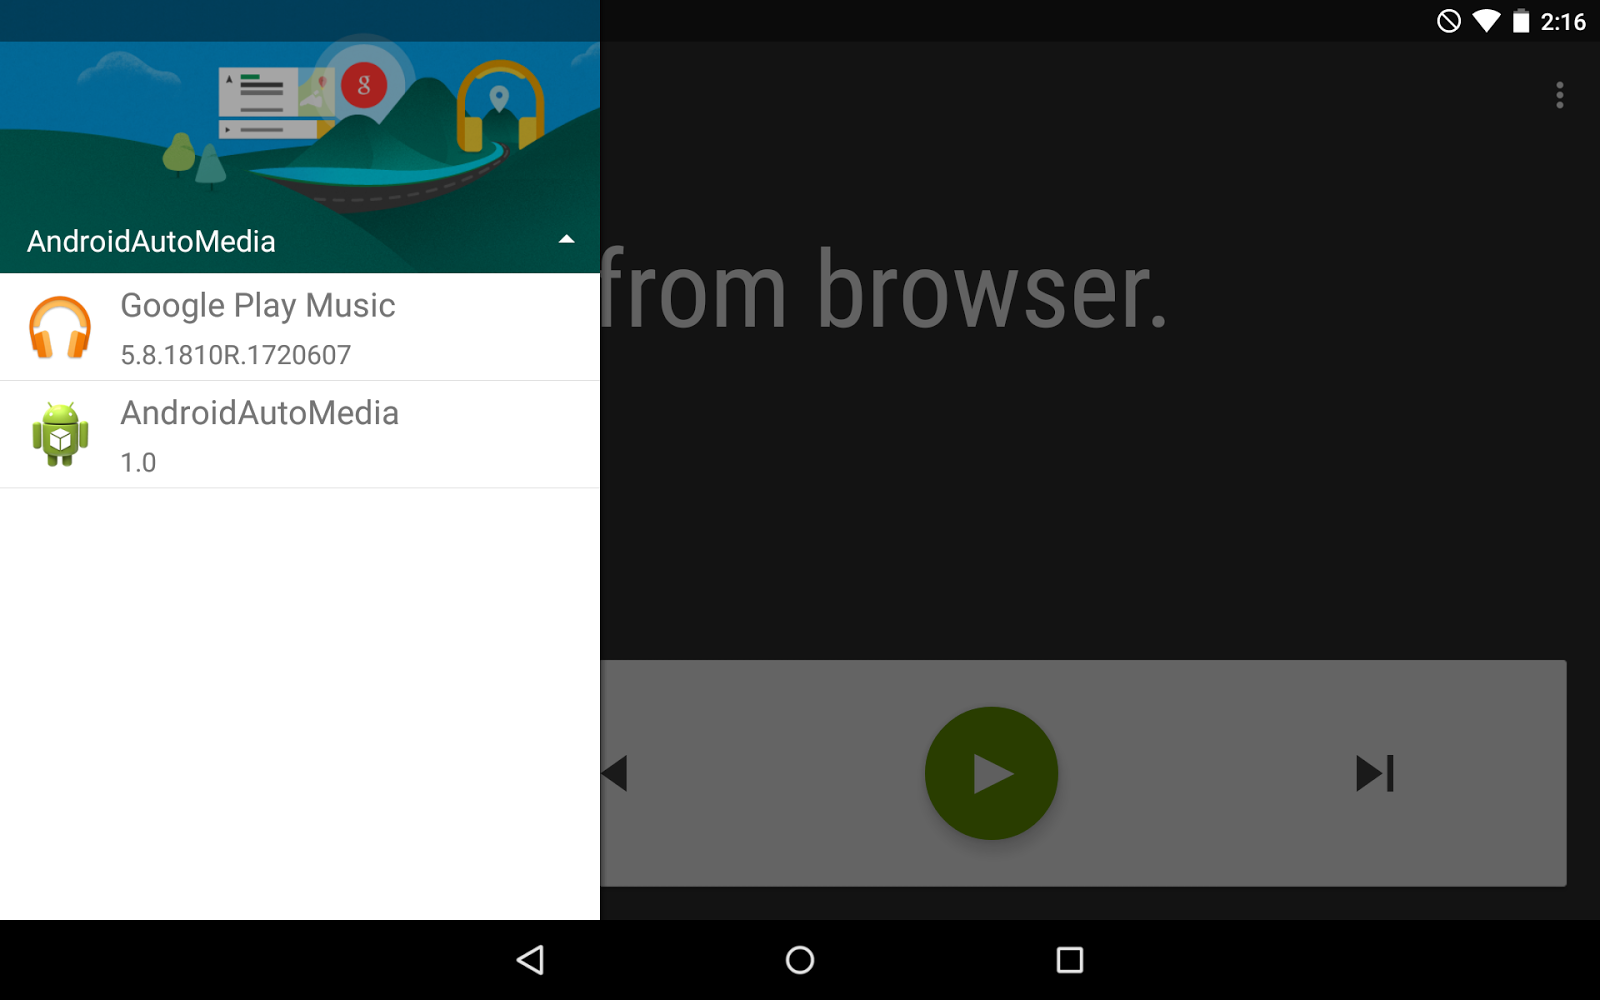 PTR Android/Programming Blog: Using the Android Auto Media